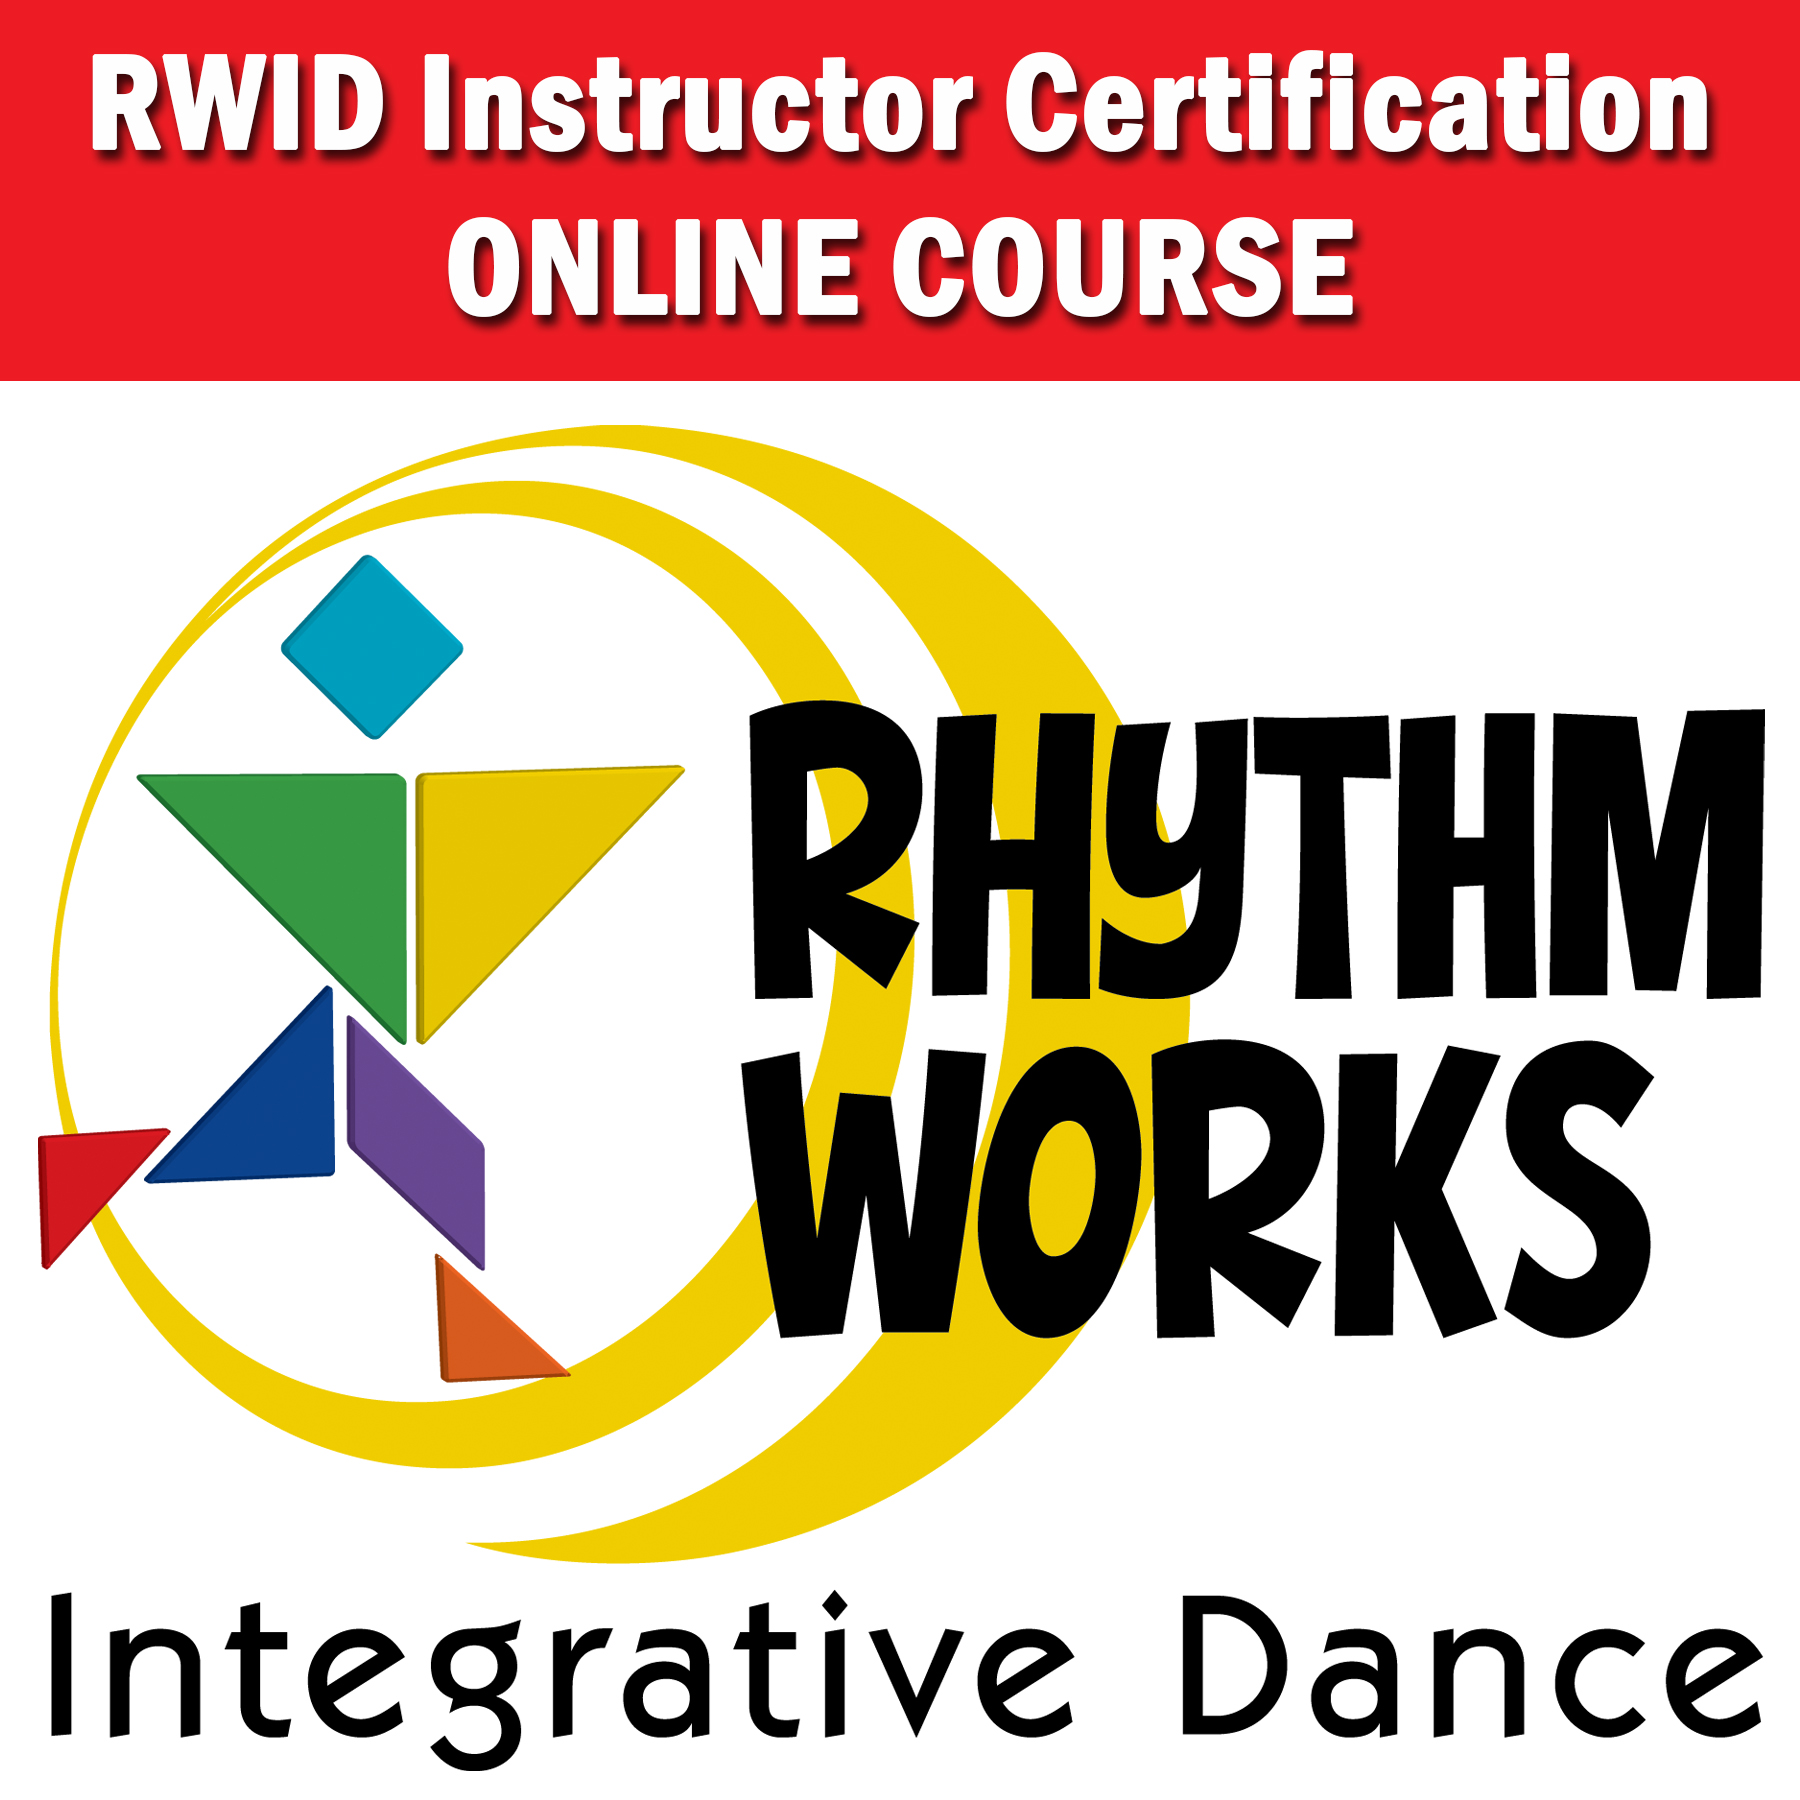 Rwid online instructor certification course rhythm works rwid instructor certification online course 1betcityfo Images